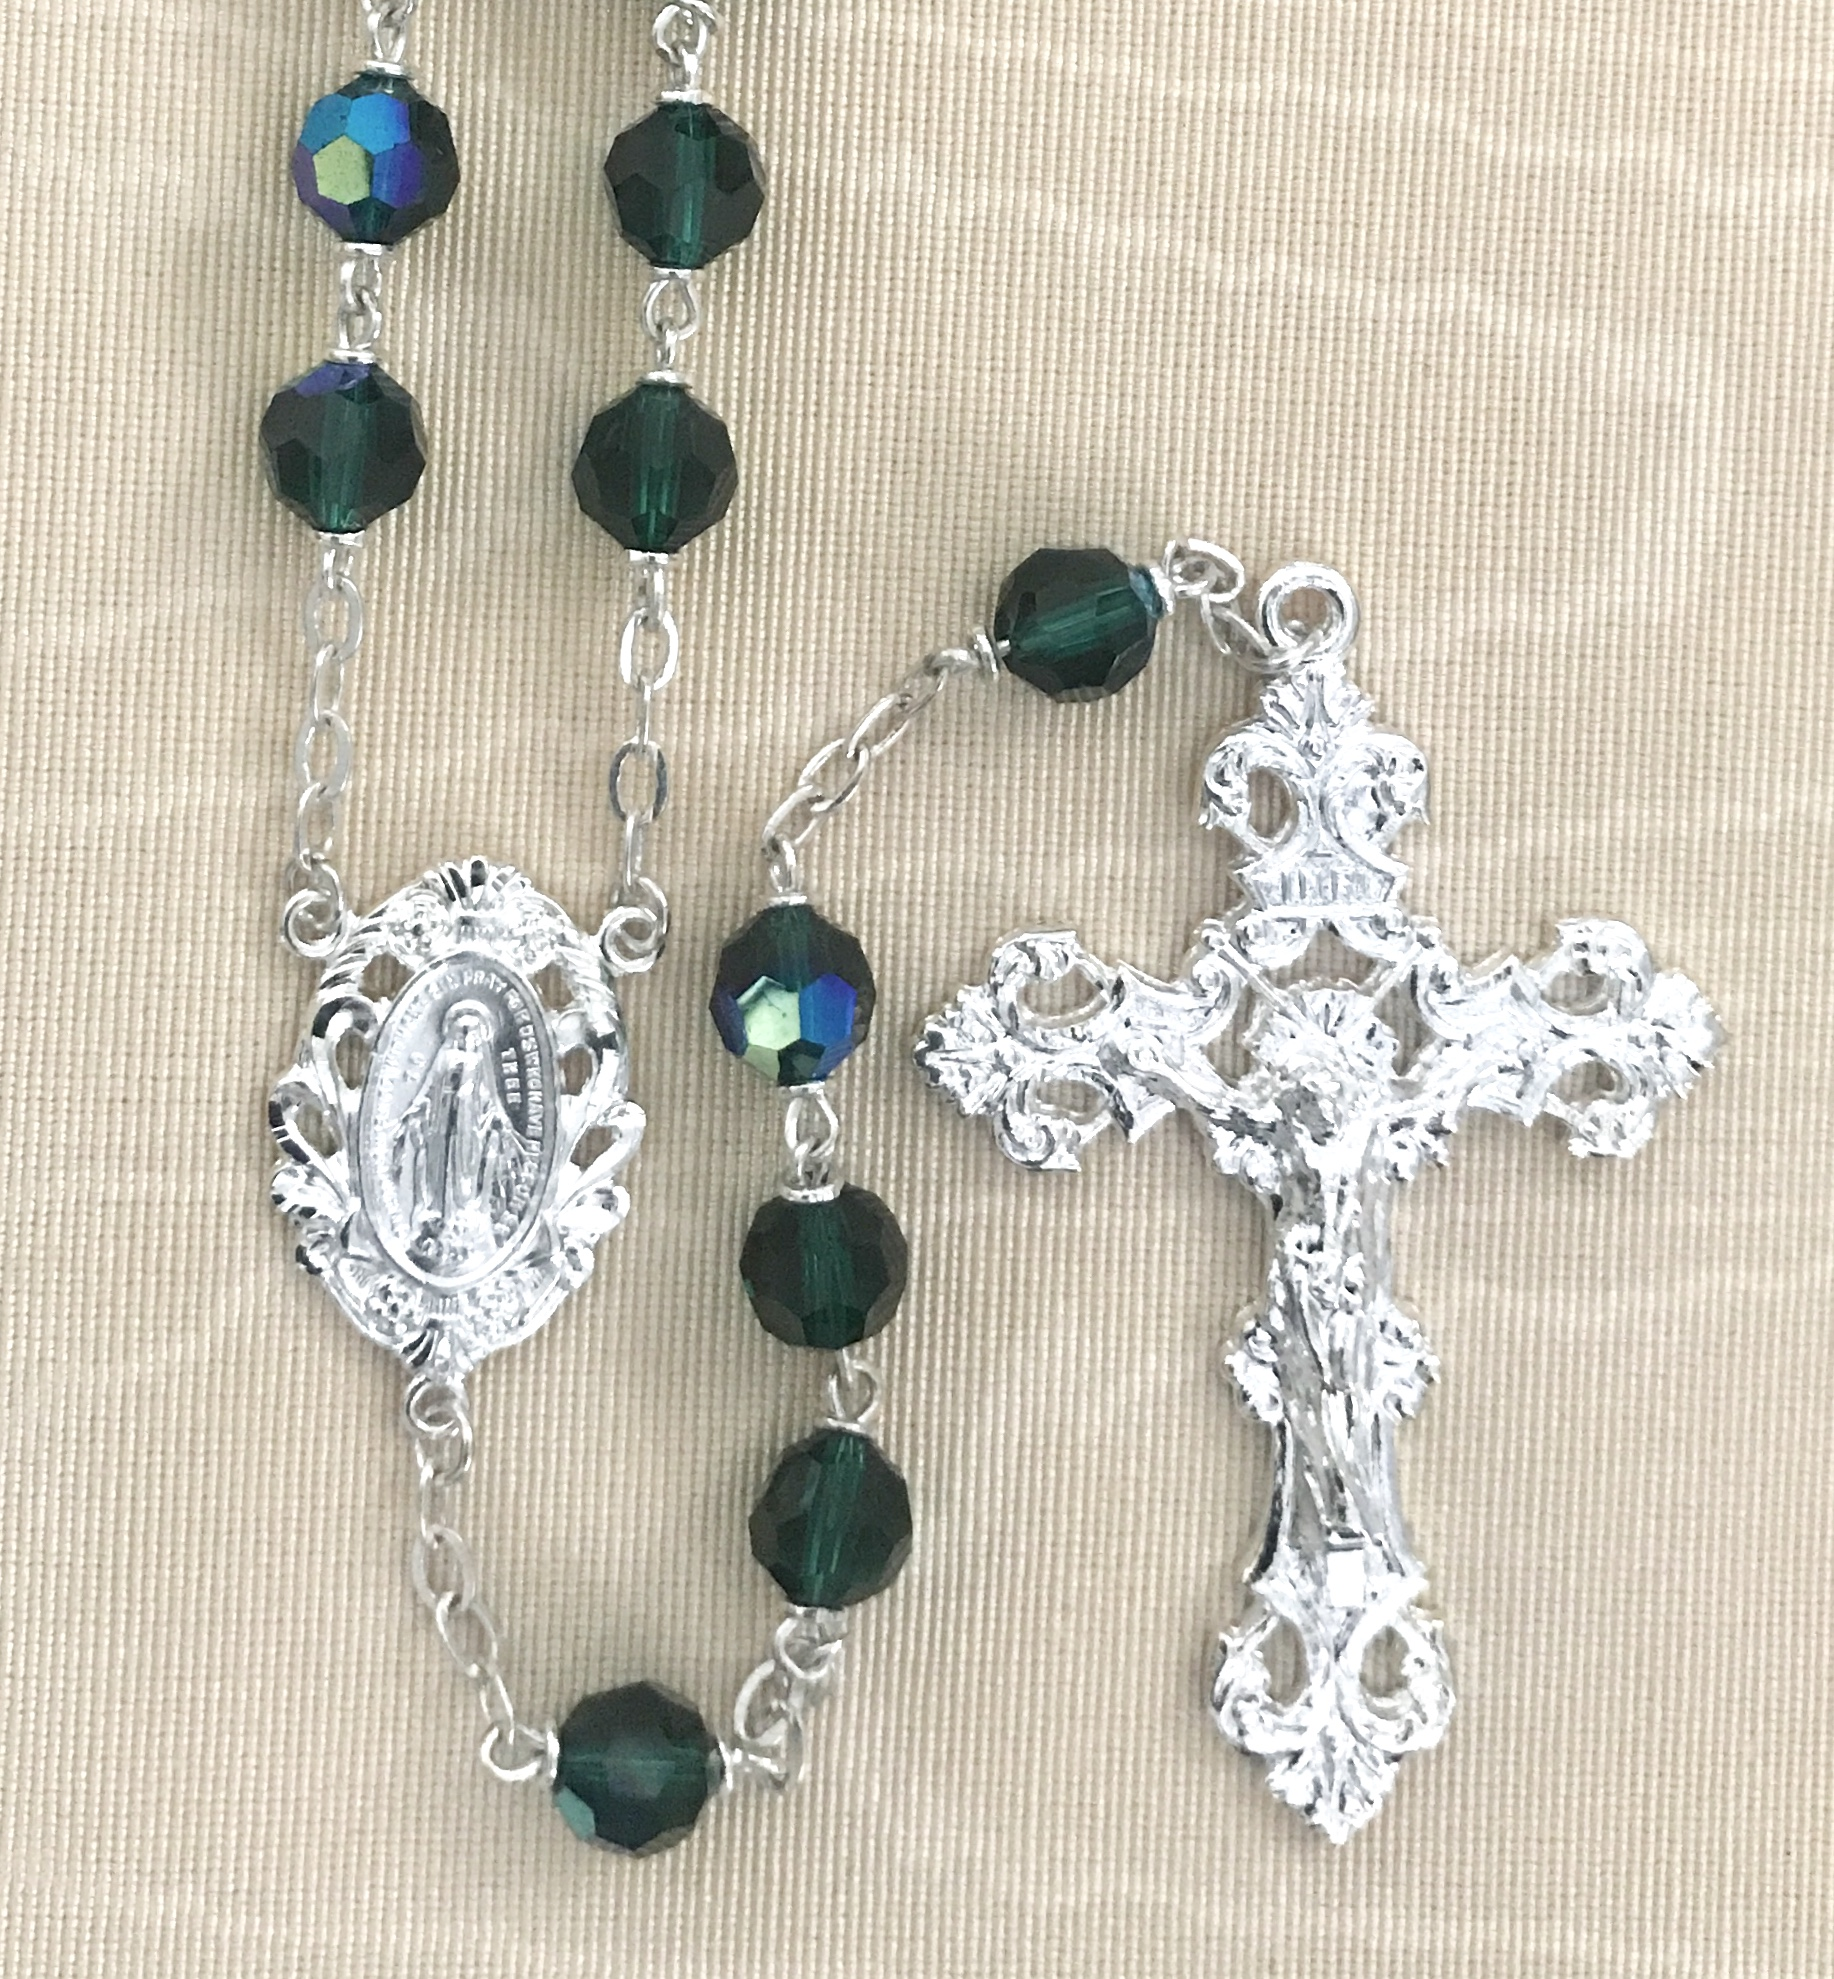 7mm ROUND EMERALD AB ROSARY WITH STERLING SILVER PLATED CENTER & CRUCIFIX GIFT BOXED